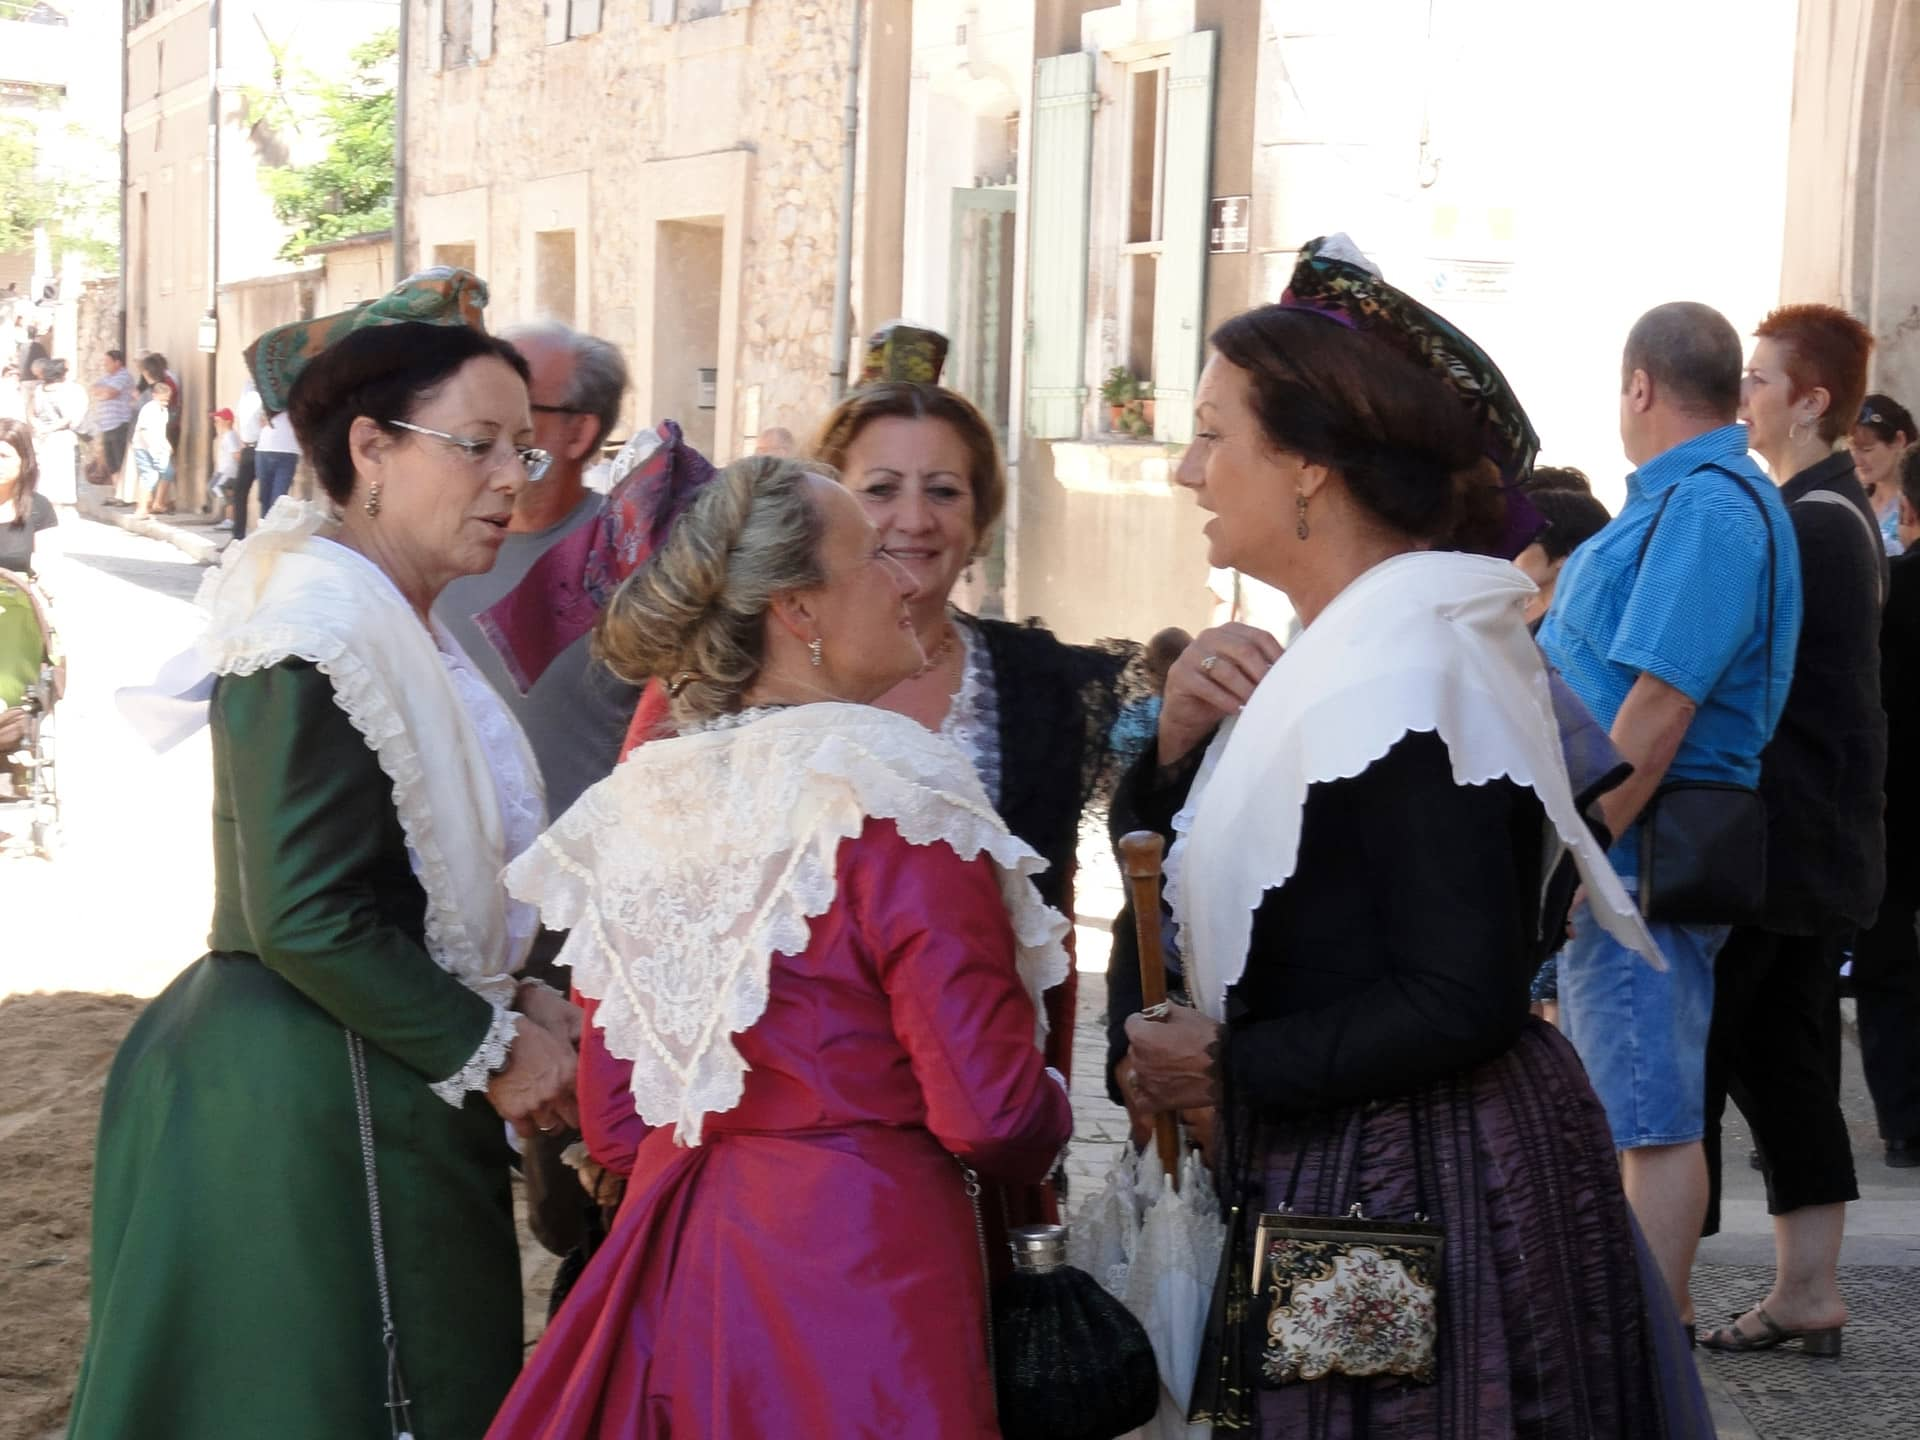 Les costumes traditionnels du Gard